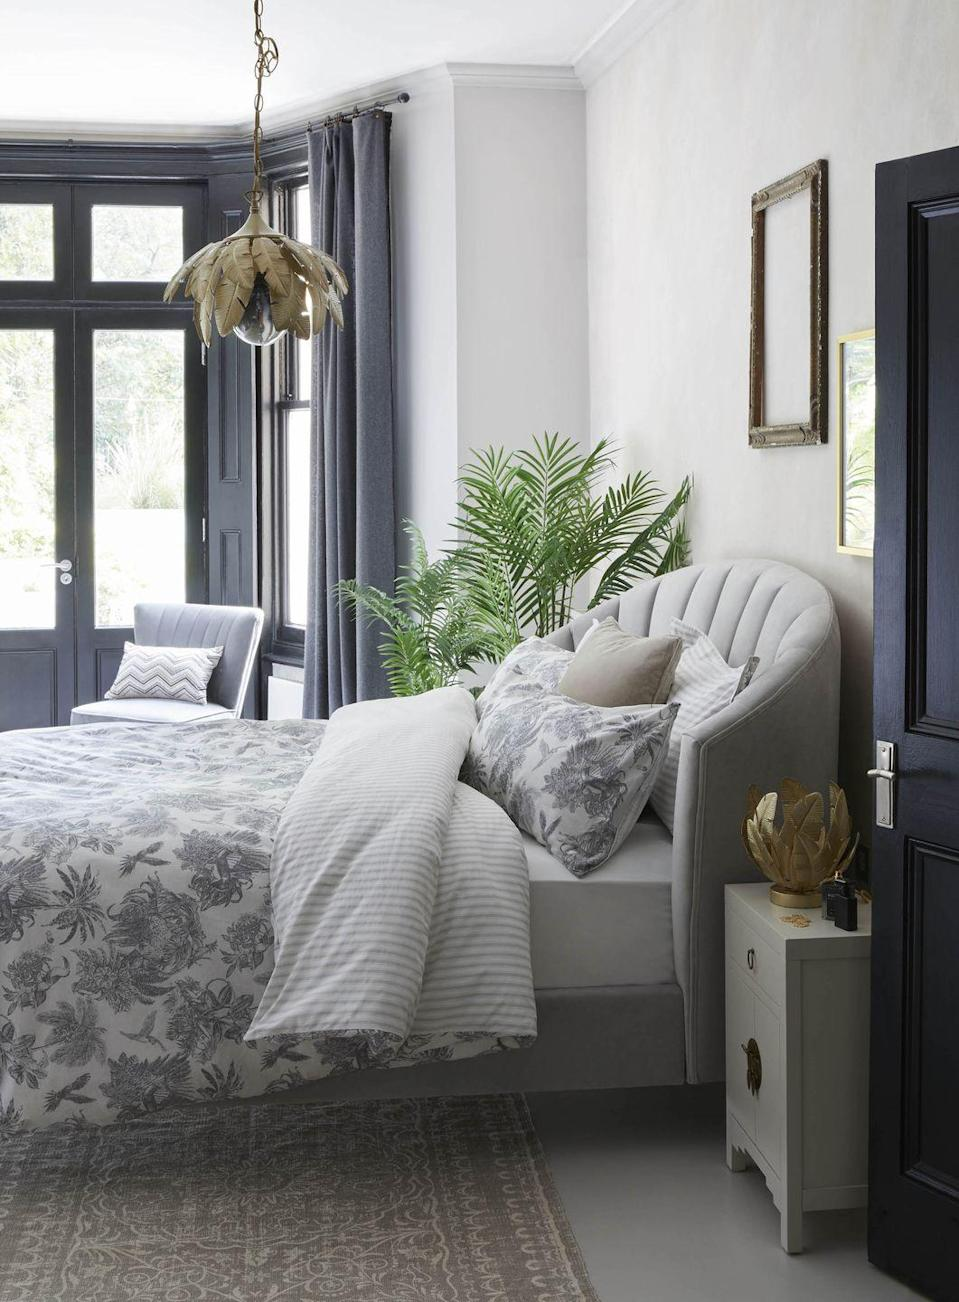 """<p>If you want a grey bedroom scheme but you think dark walls aren't for you, why not paint the door and window frames to add a 'frame' to the room and a backdrop to the furniture? Your eye is drawn to it as soon as you walk in the room. Then add plain grey curtains that seem to disappear when they are open, attached to a black pole.</p><p>Pictured: Farrah Palm Leaf Ceiling Fitting Gold, Matilda Dove Grey Bed, Amazonia Toile Duvet Cover Set, Farrah Palm Leaf Touch Table Lamp, Hannah Mini Oyster Chest, Medallion Cotton Rug, Grey Isla Chair, all <a href=""""https://go.redirectingat.com?id=127X1599956&url=https%3A%2F%2Fwww.dunelm.com%2F&sref=https%3A%2F%2Fwww.housebeautiful.com%2Fuk%2Fdecorate%2Fbedroom%2Fg35432015%2Fgrey-bedroom-ideas%2F"""" rel=""""nofollow noopener"""" target=""""_blank"""" data-ylk=""""slk:Dunelm"""" class=""""link rapid-noclick-resp"""">Dunelm</a></p>"""